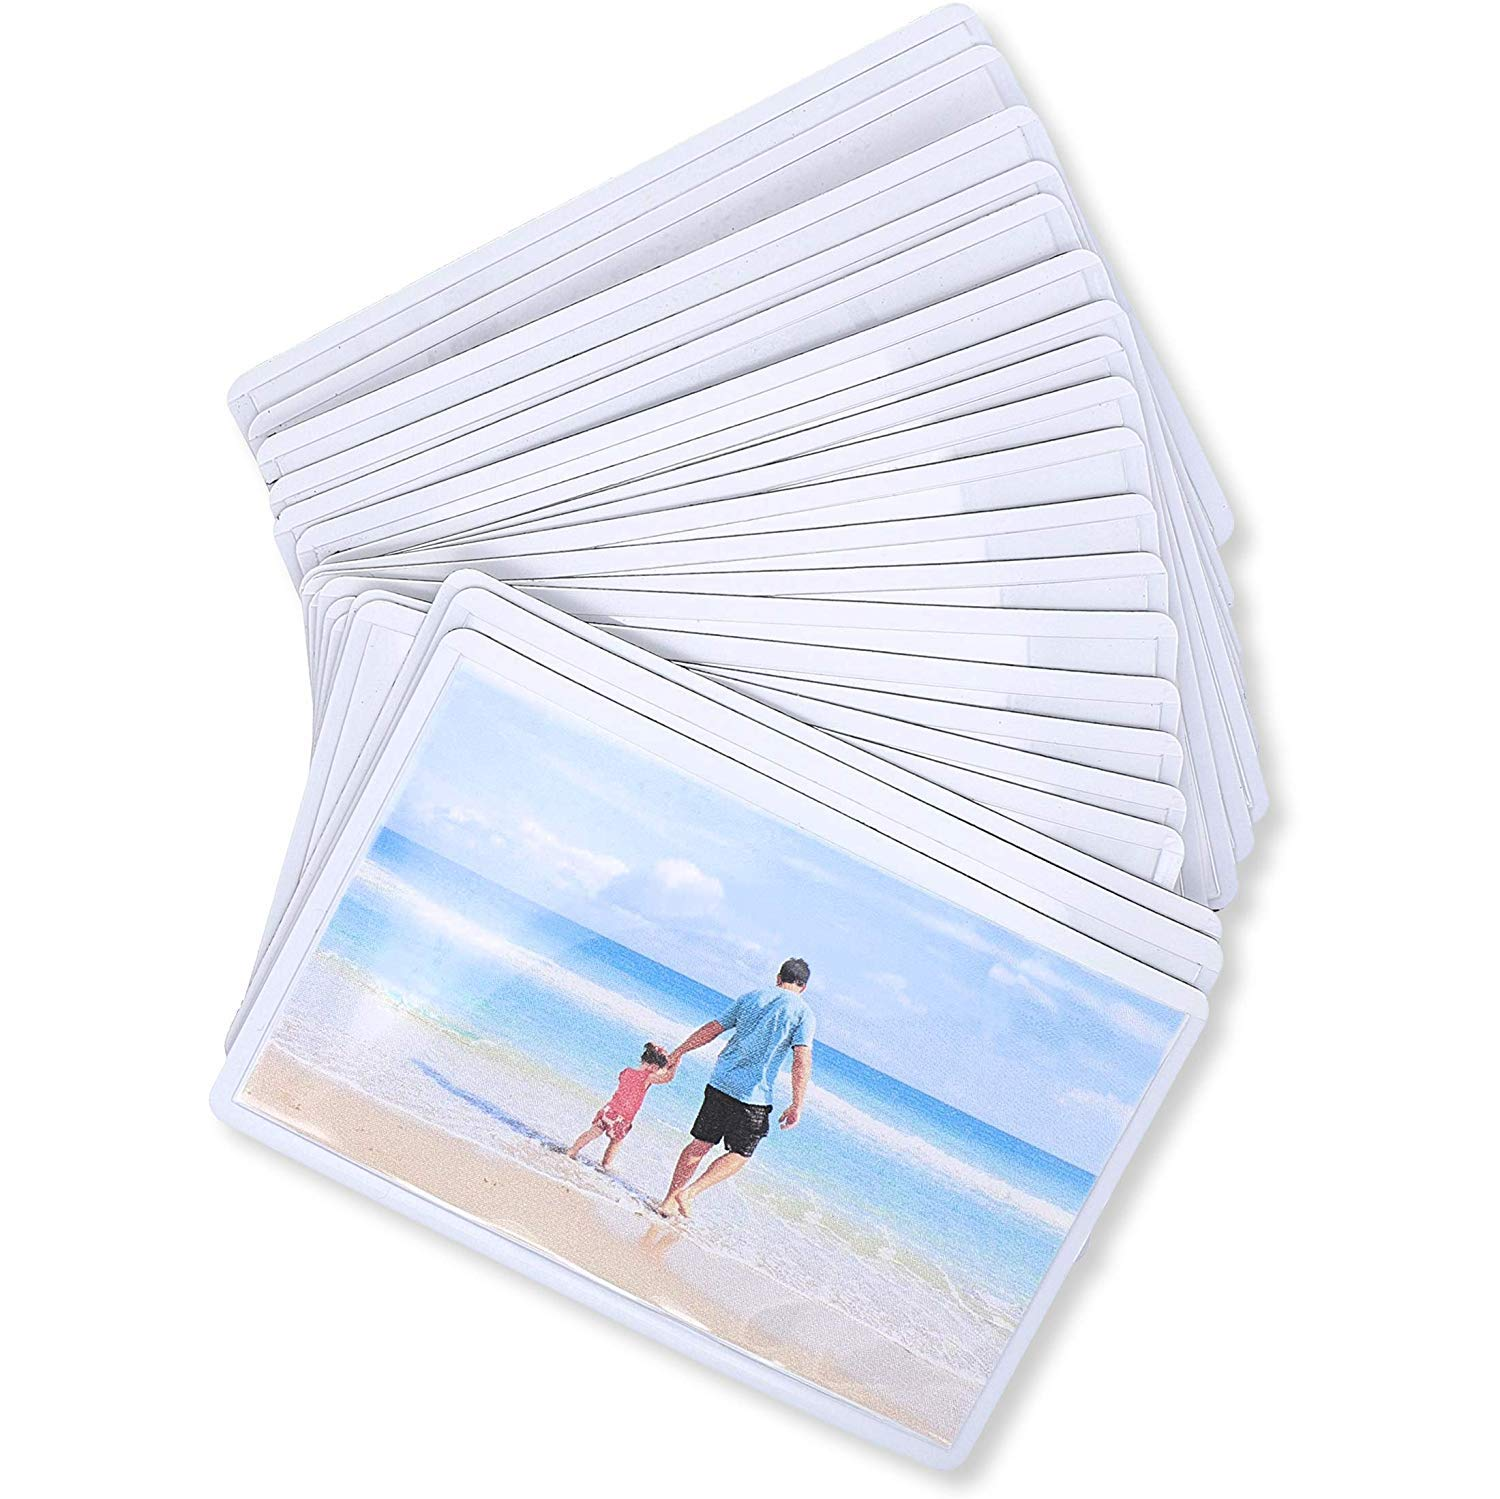 Juvale 24-Pack Magnetic Wallet Picture Frame, 2.5 x 3.5 Inches